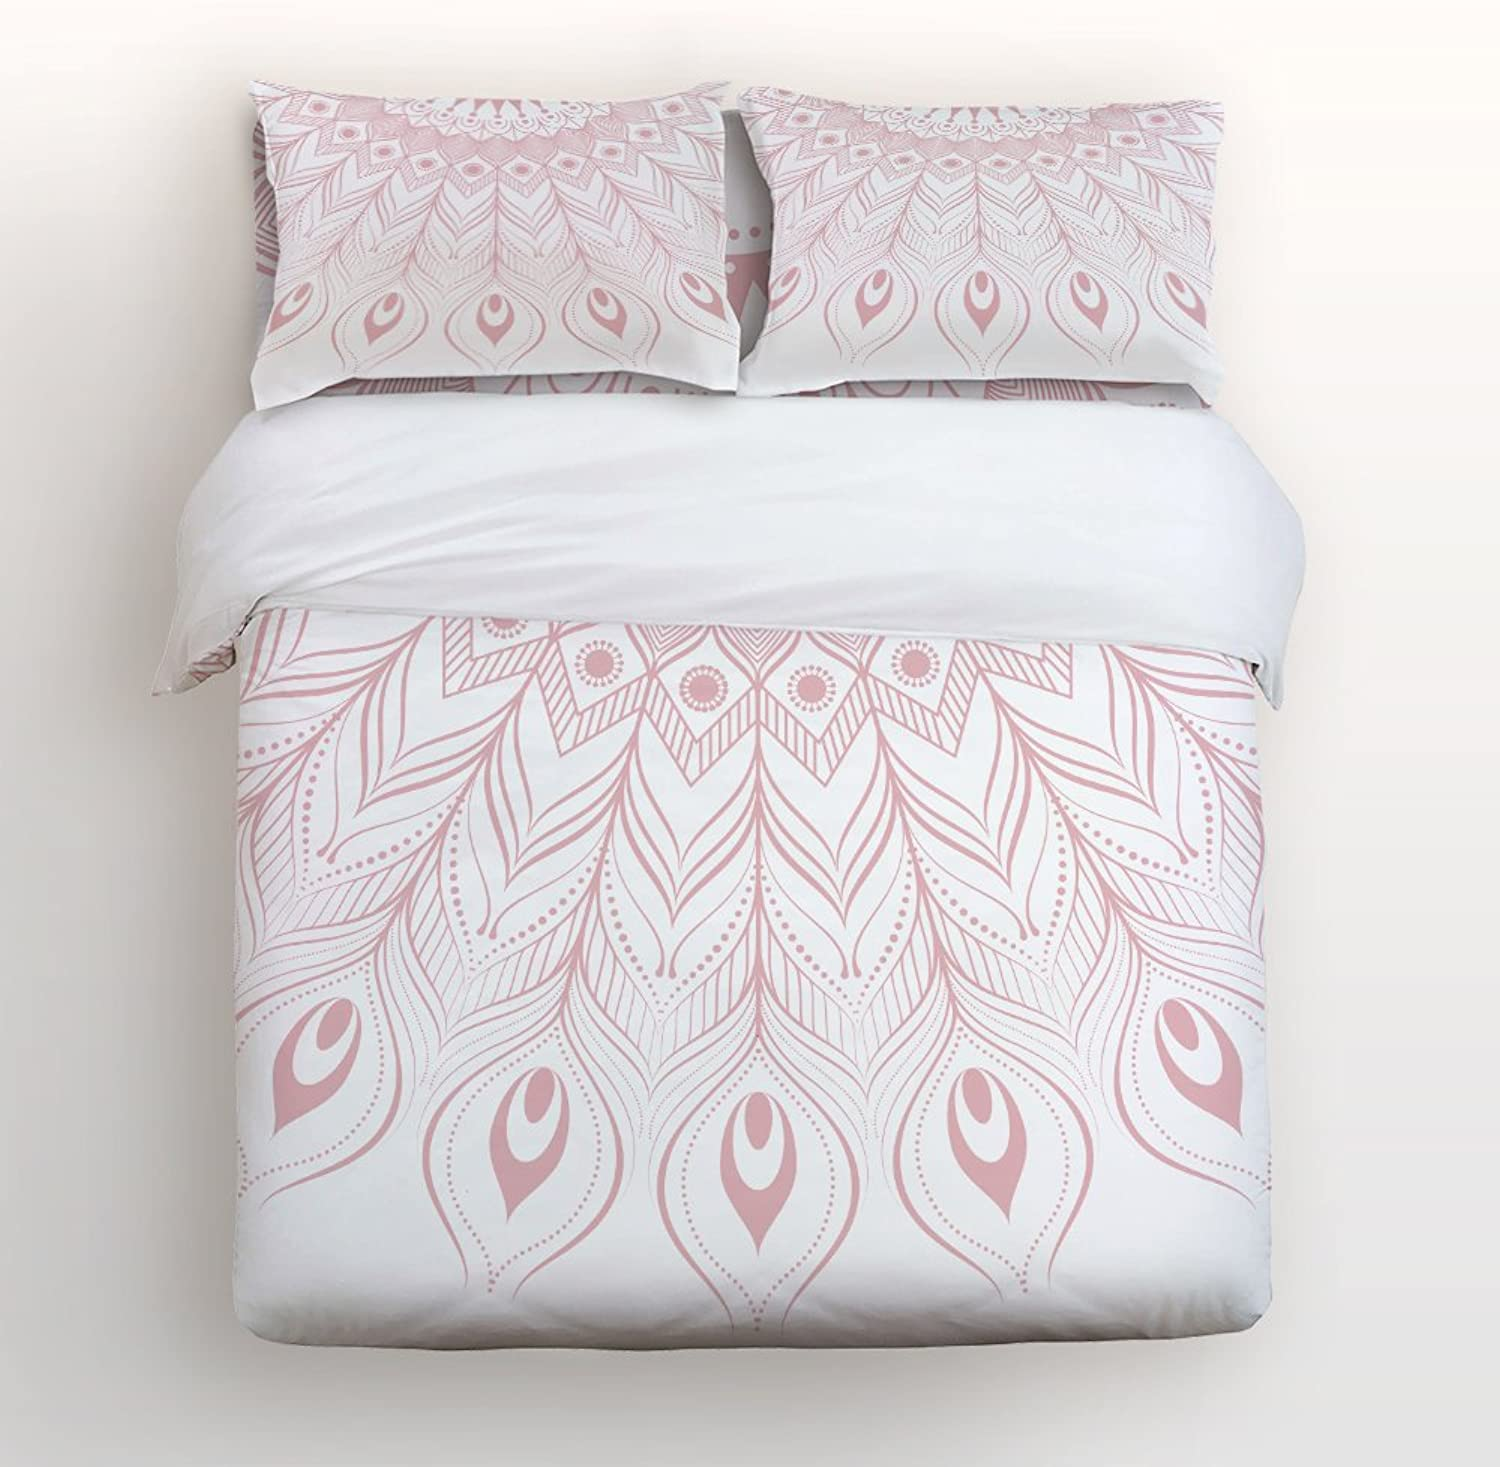 Libaoge 4 Piece Bed Sheets Set, Detailed Mandala Geometric Peacock Feather Pink Print, 1 Flat Sheet 1 Duvet Cover and 2 Pillow Cases